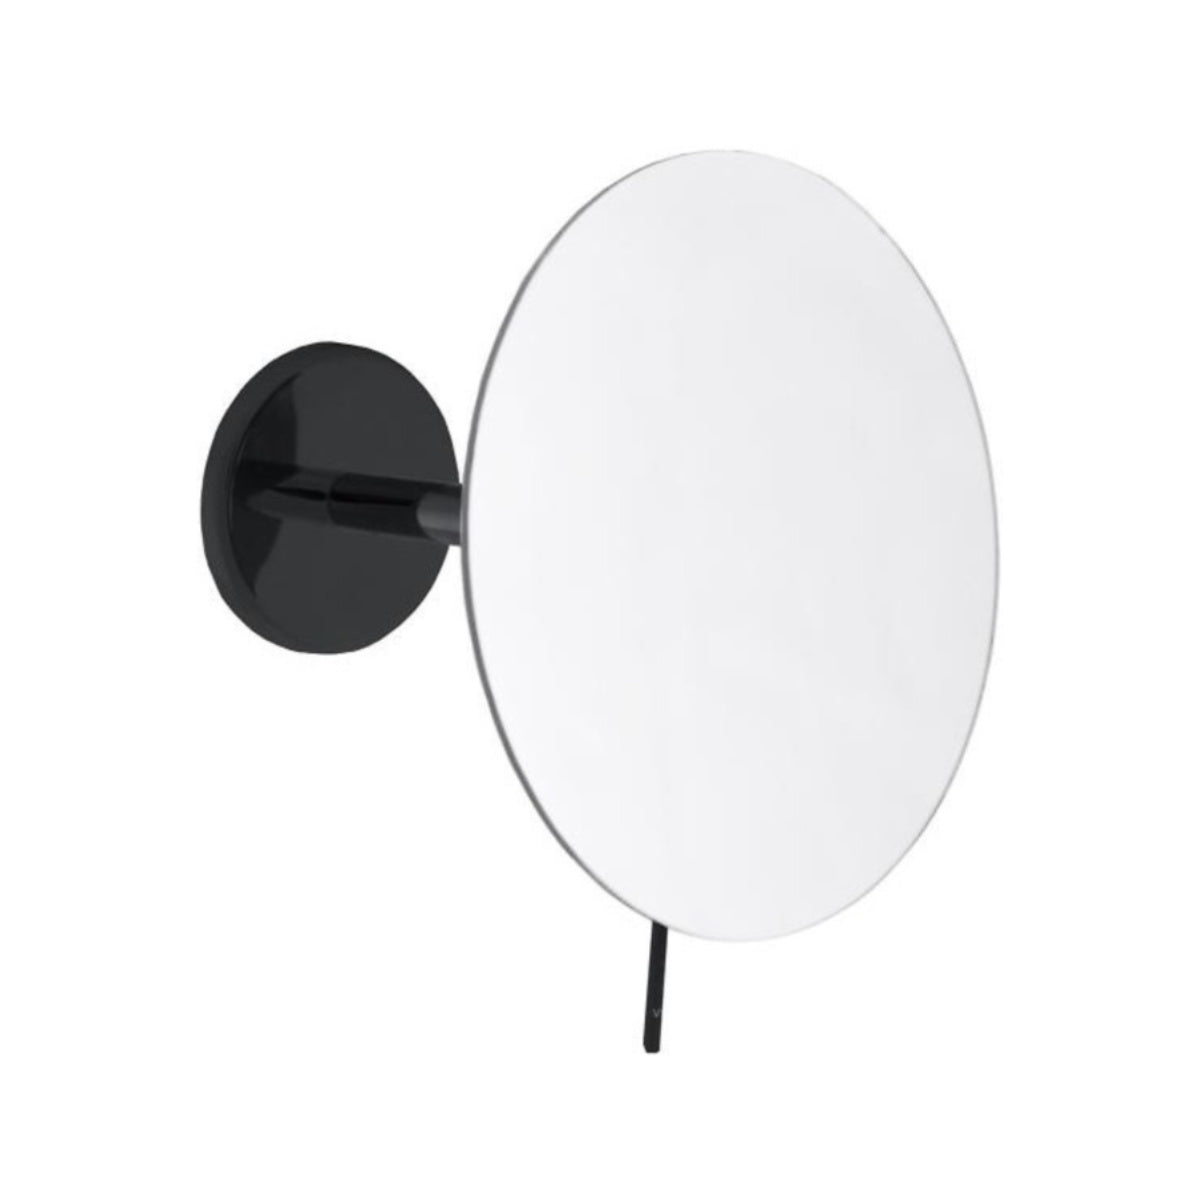 Emco Black Wall Mirror, 3x, Round